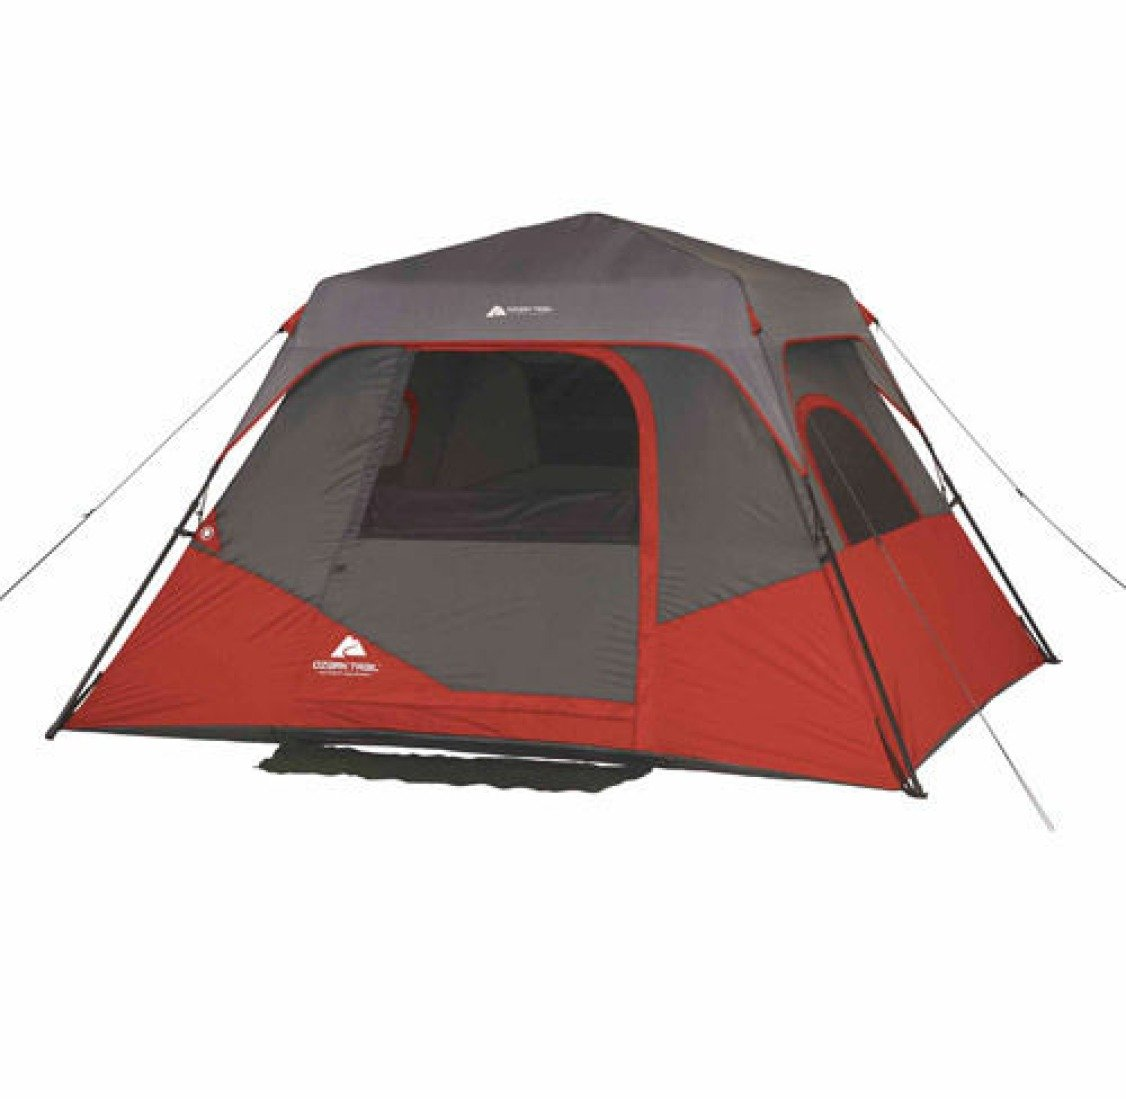 ozark trail 6 person instant tent camping outdoor family 88883